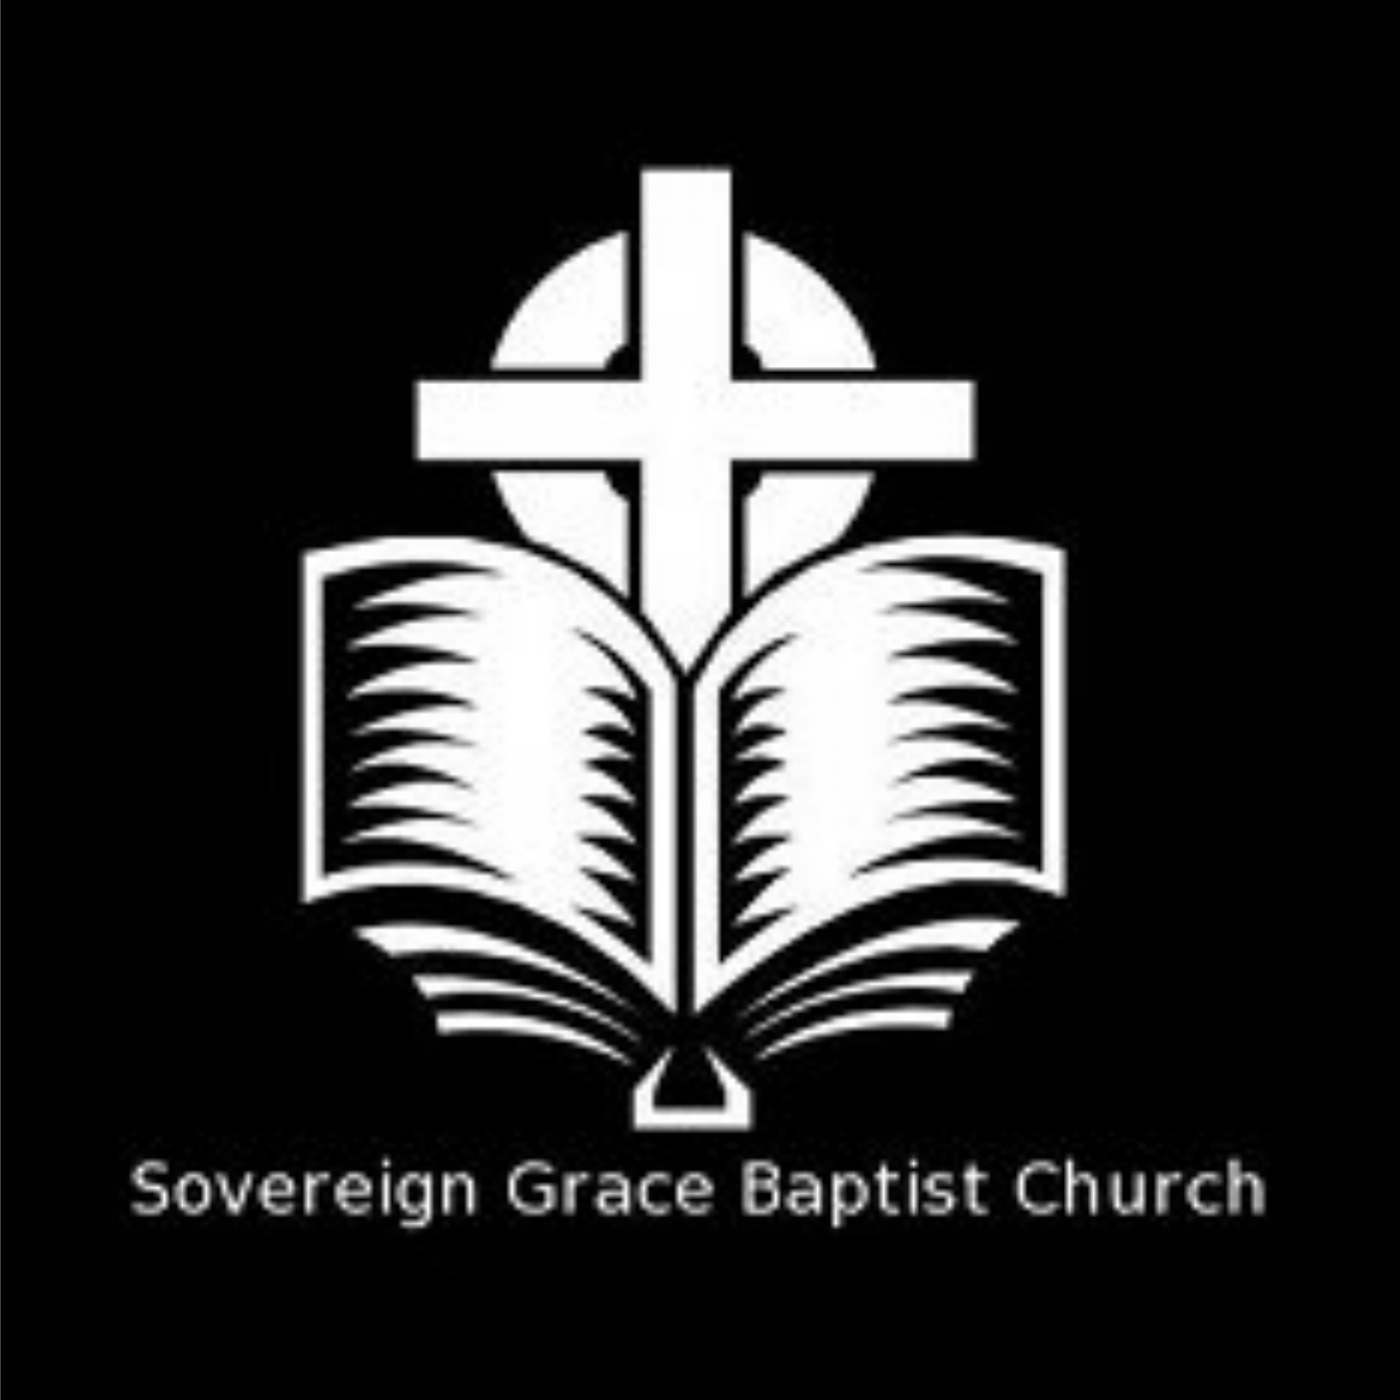 Sovereign Grace Baptist Church: Guest Speakers